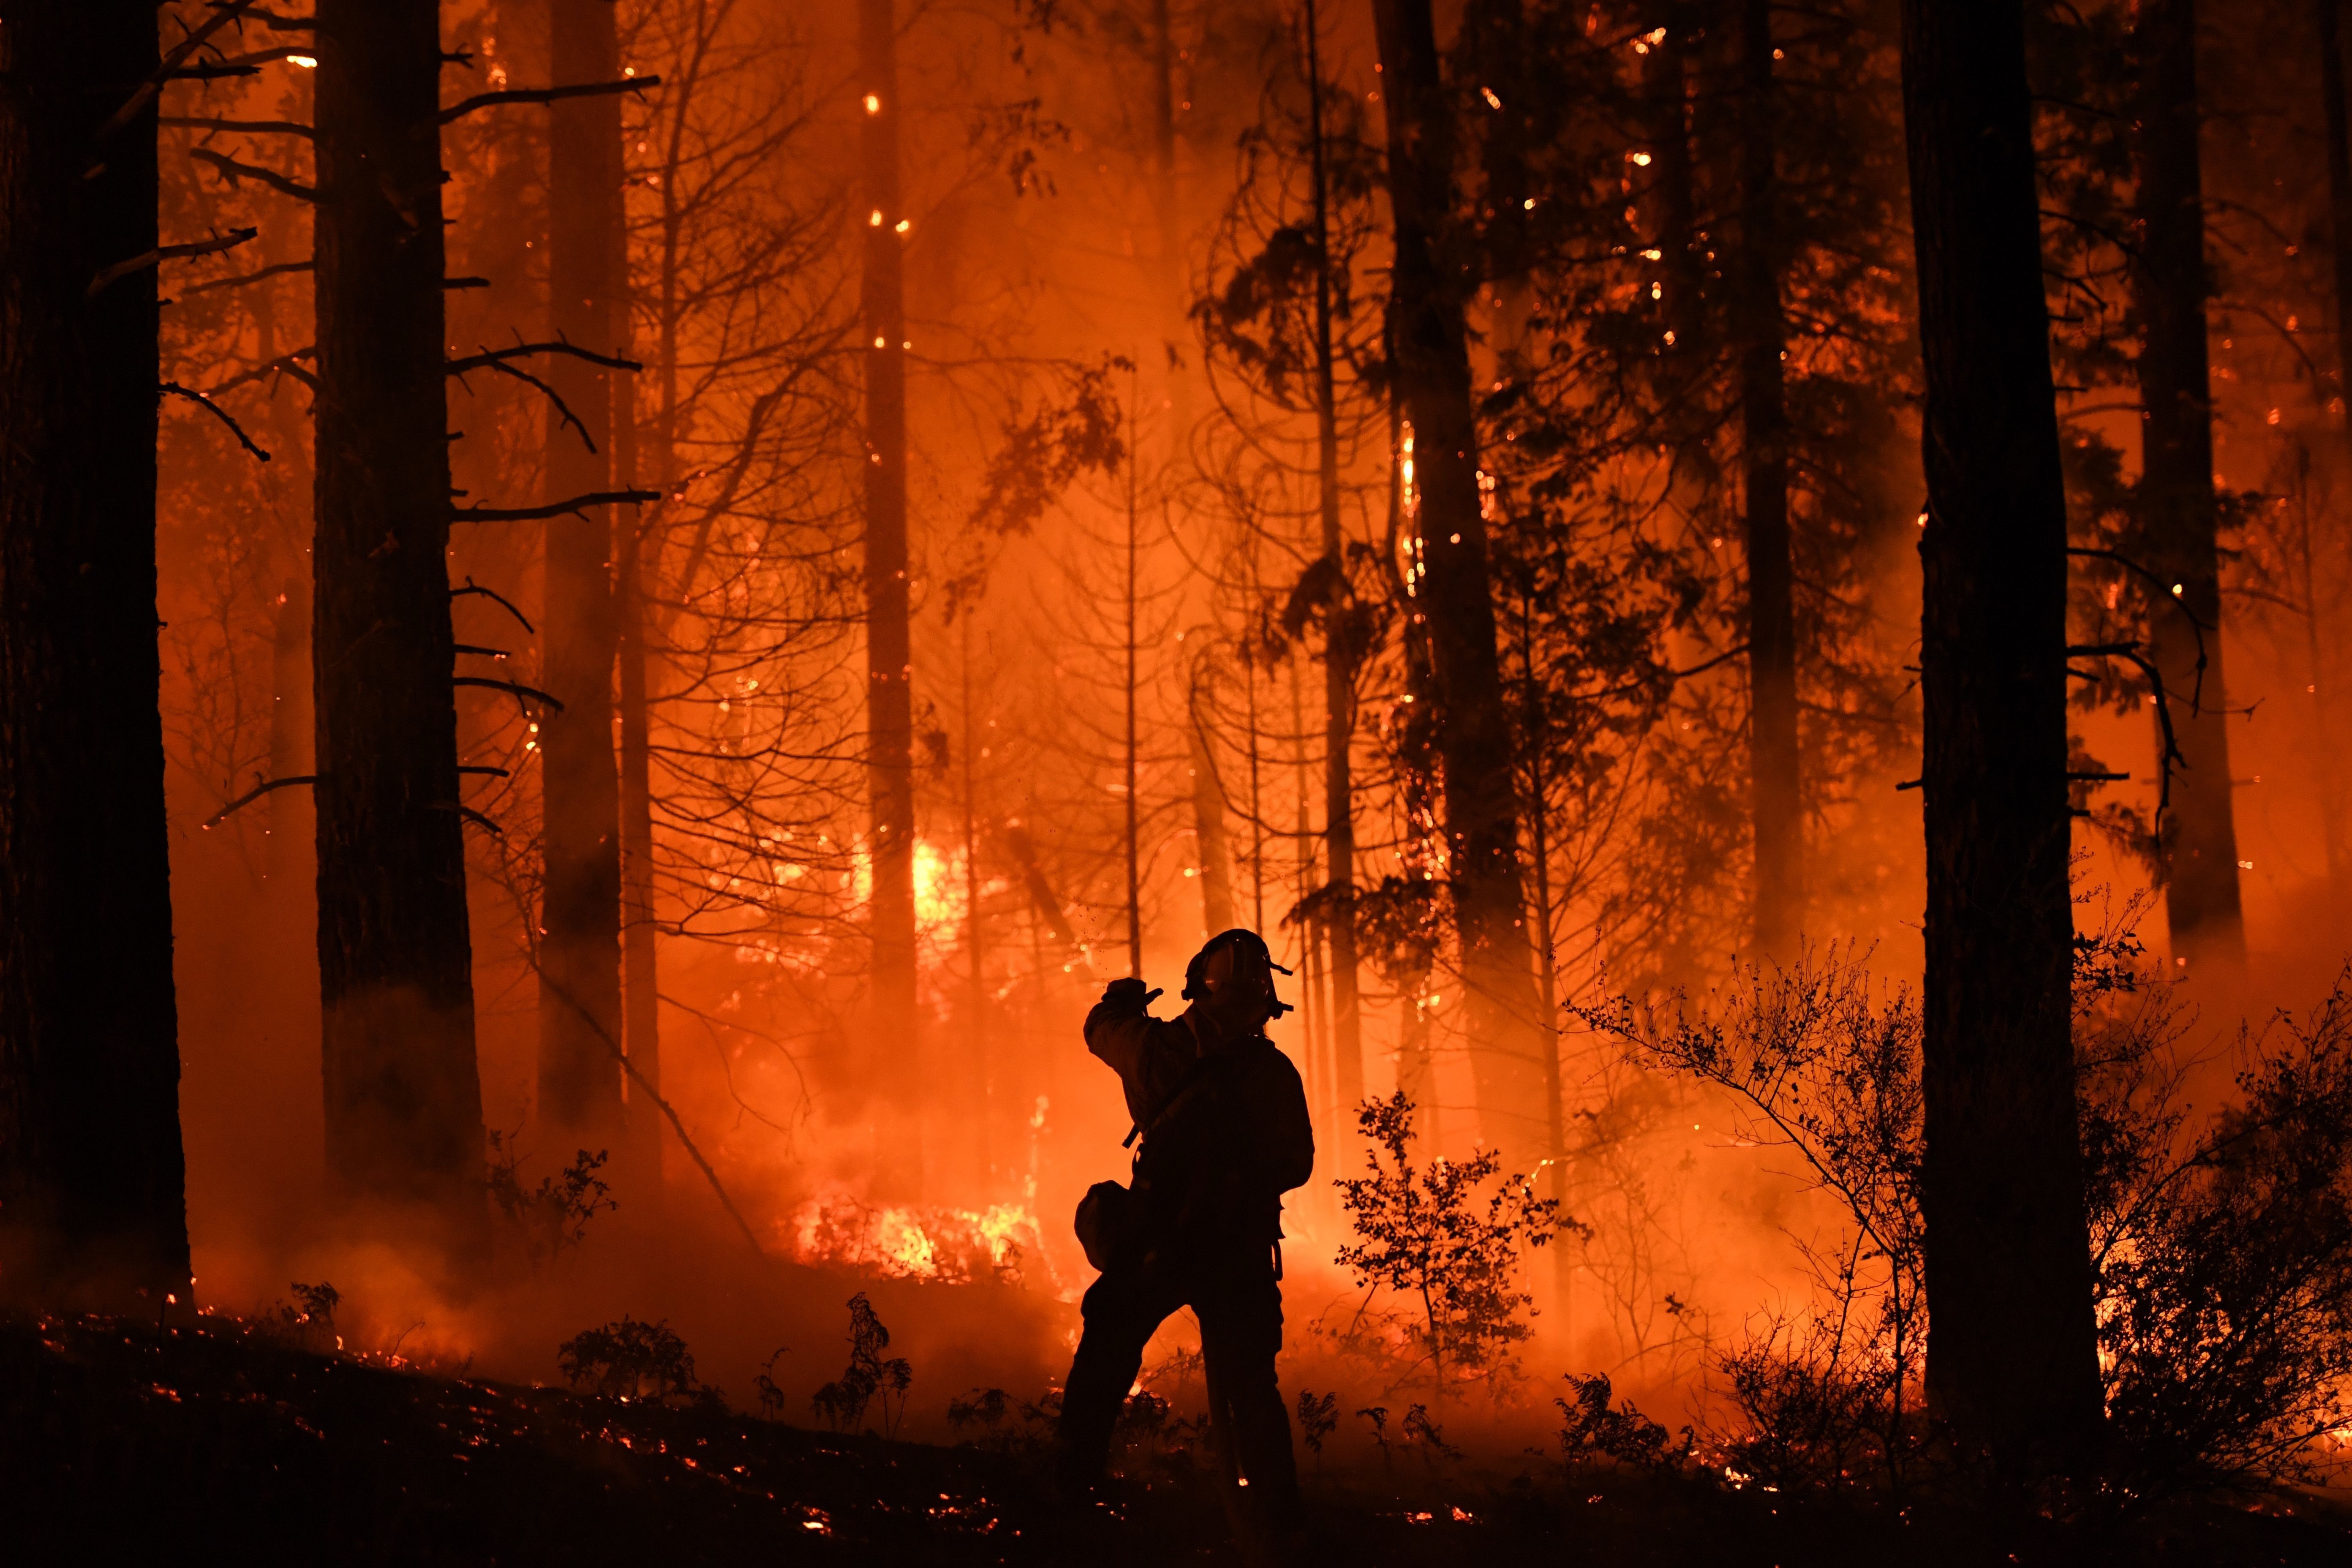 A firefighter tries to control a back burn as the Carr fire continues to spread towards the towns of Douglas City and Lewiston near Redding, California on July 31, 2018. - Two firefighters were killed fighting the blaze and three people, a 70 year old woman and her two great-grandchildren age four and five, perished when their Redding home was rapidly swallowed up by flames. (Photo by Mark RALSTON / AFP)        (Photo credit should read MARK RALSTON/AFP/Getty Images)